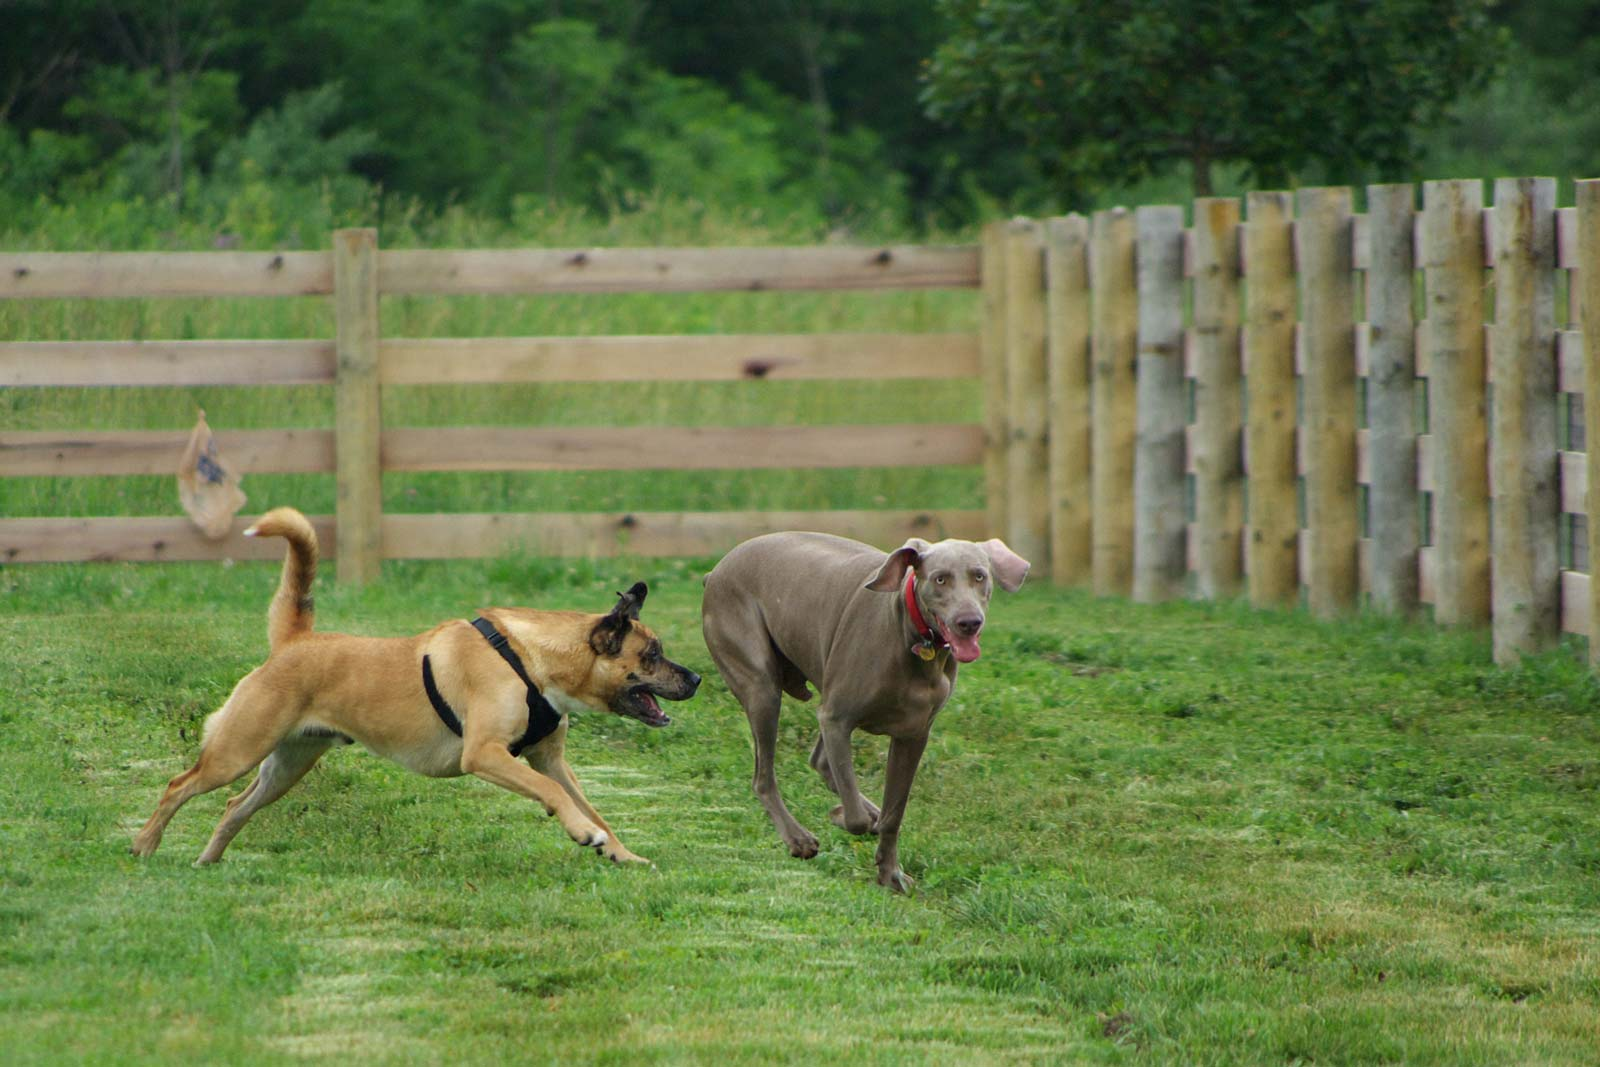 Two dogs frolic in the 5-acre dog park opened by the City of Columbus in the Sycamore Fields Area at Three Creeks Park.